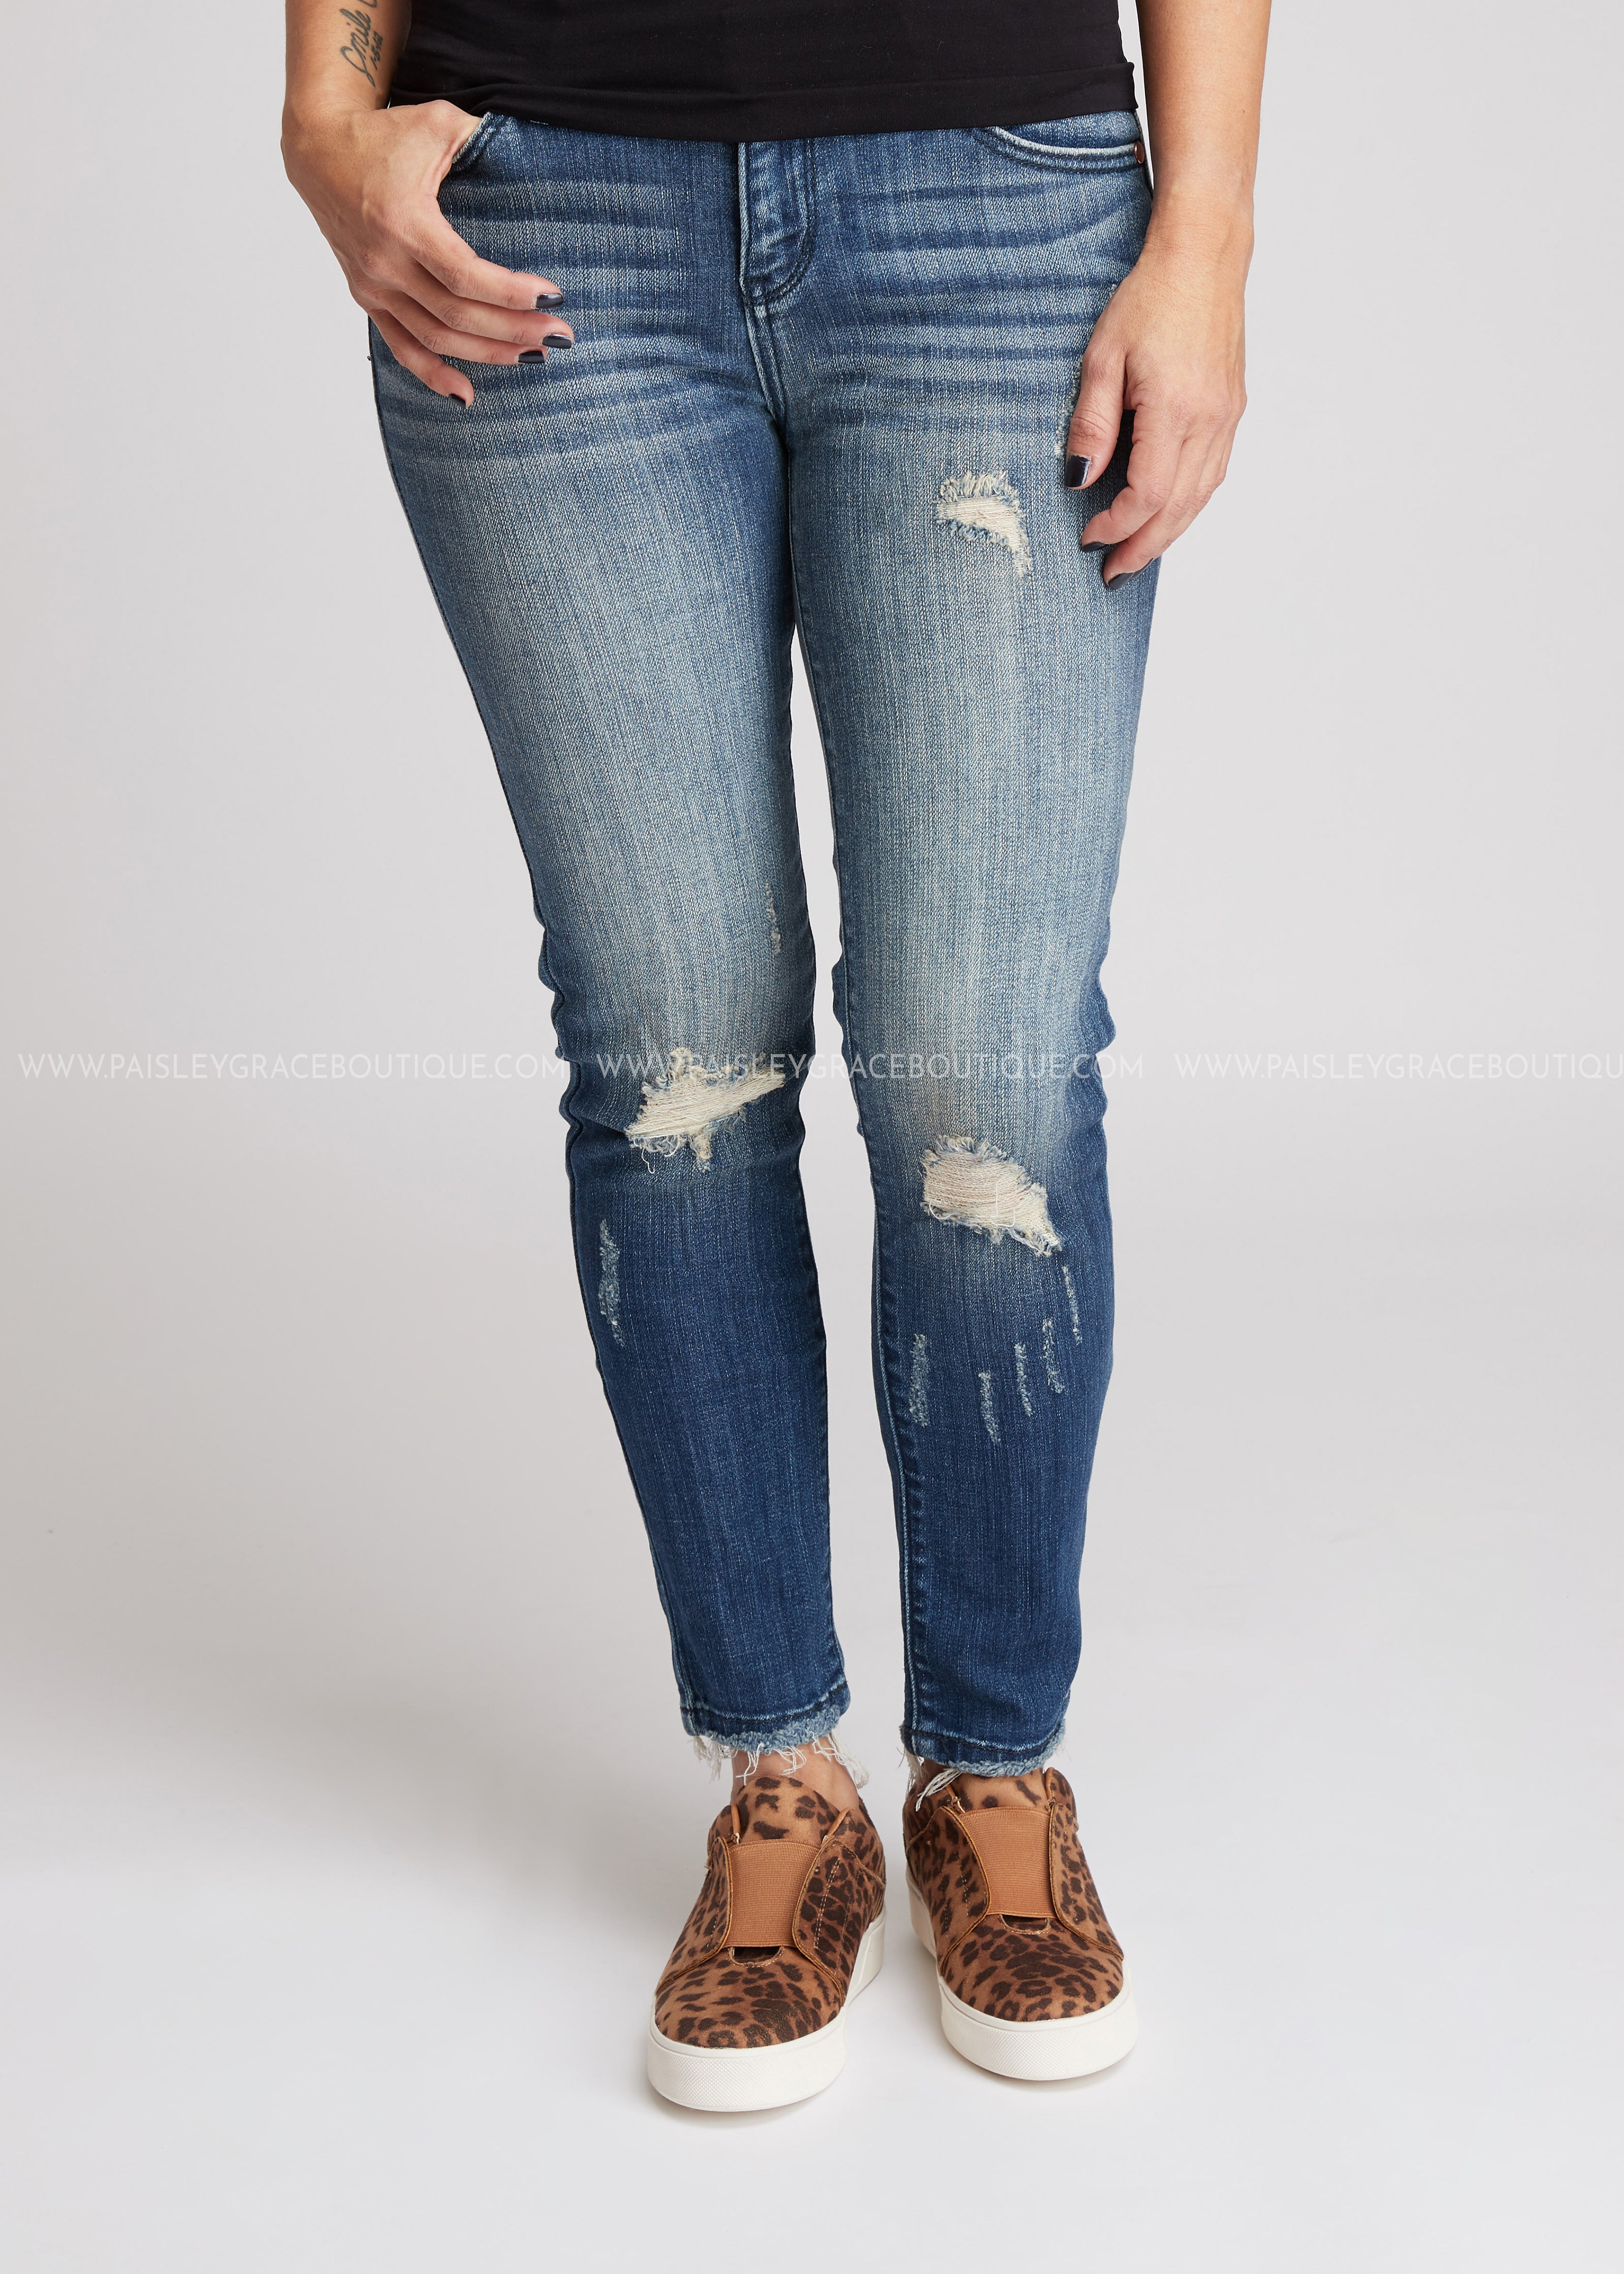 Southern Edge Skinny Frayed Jeans